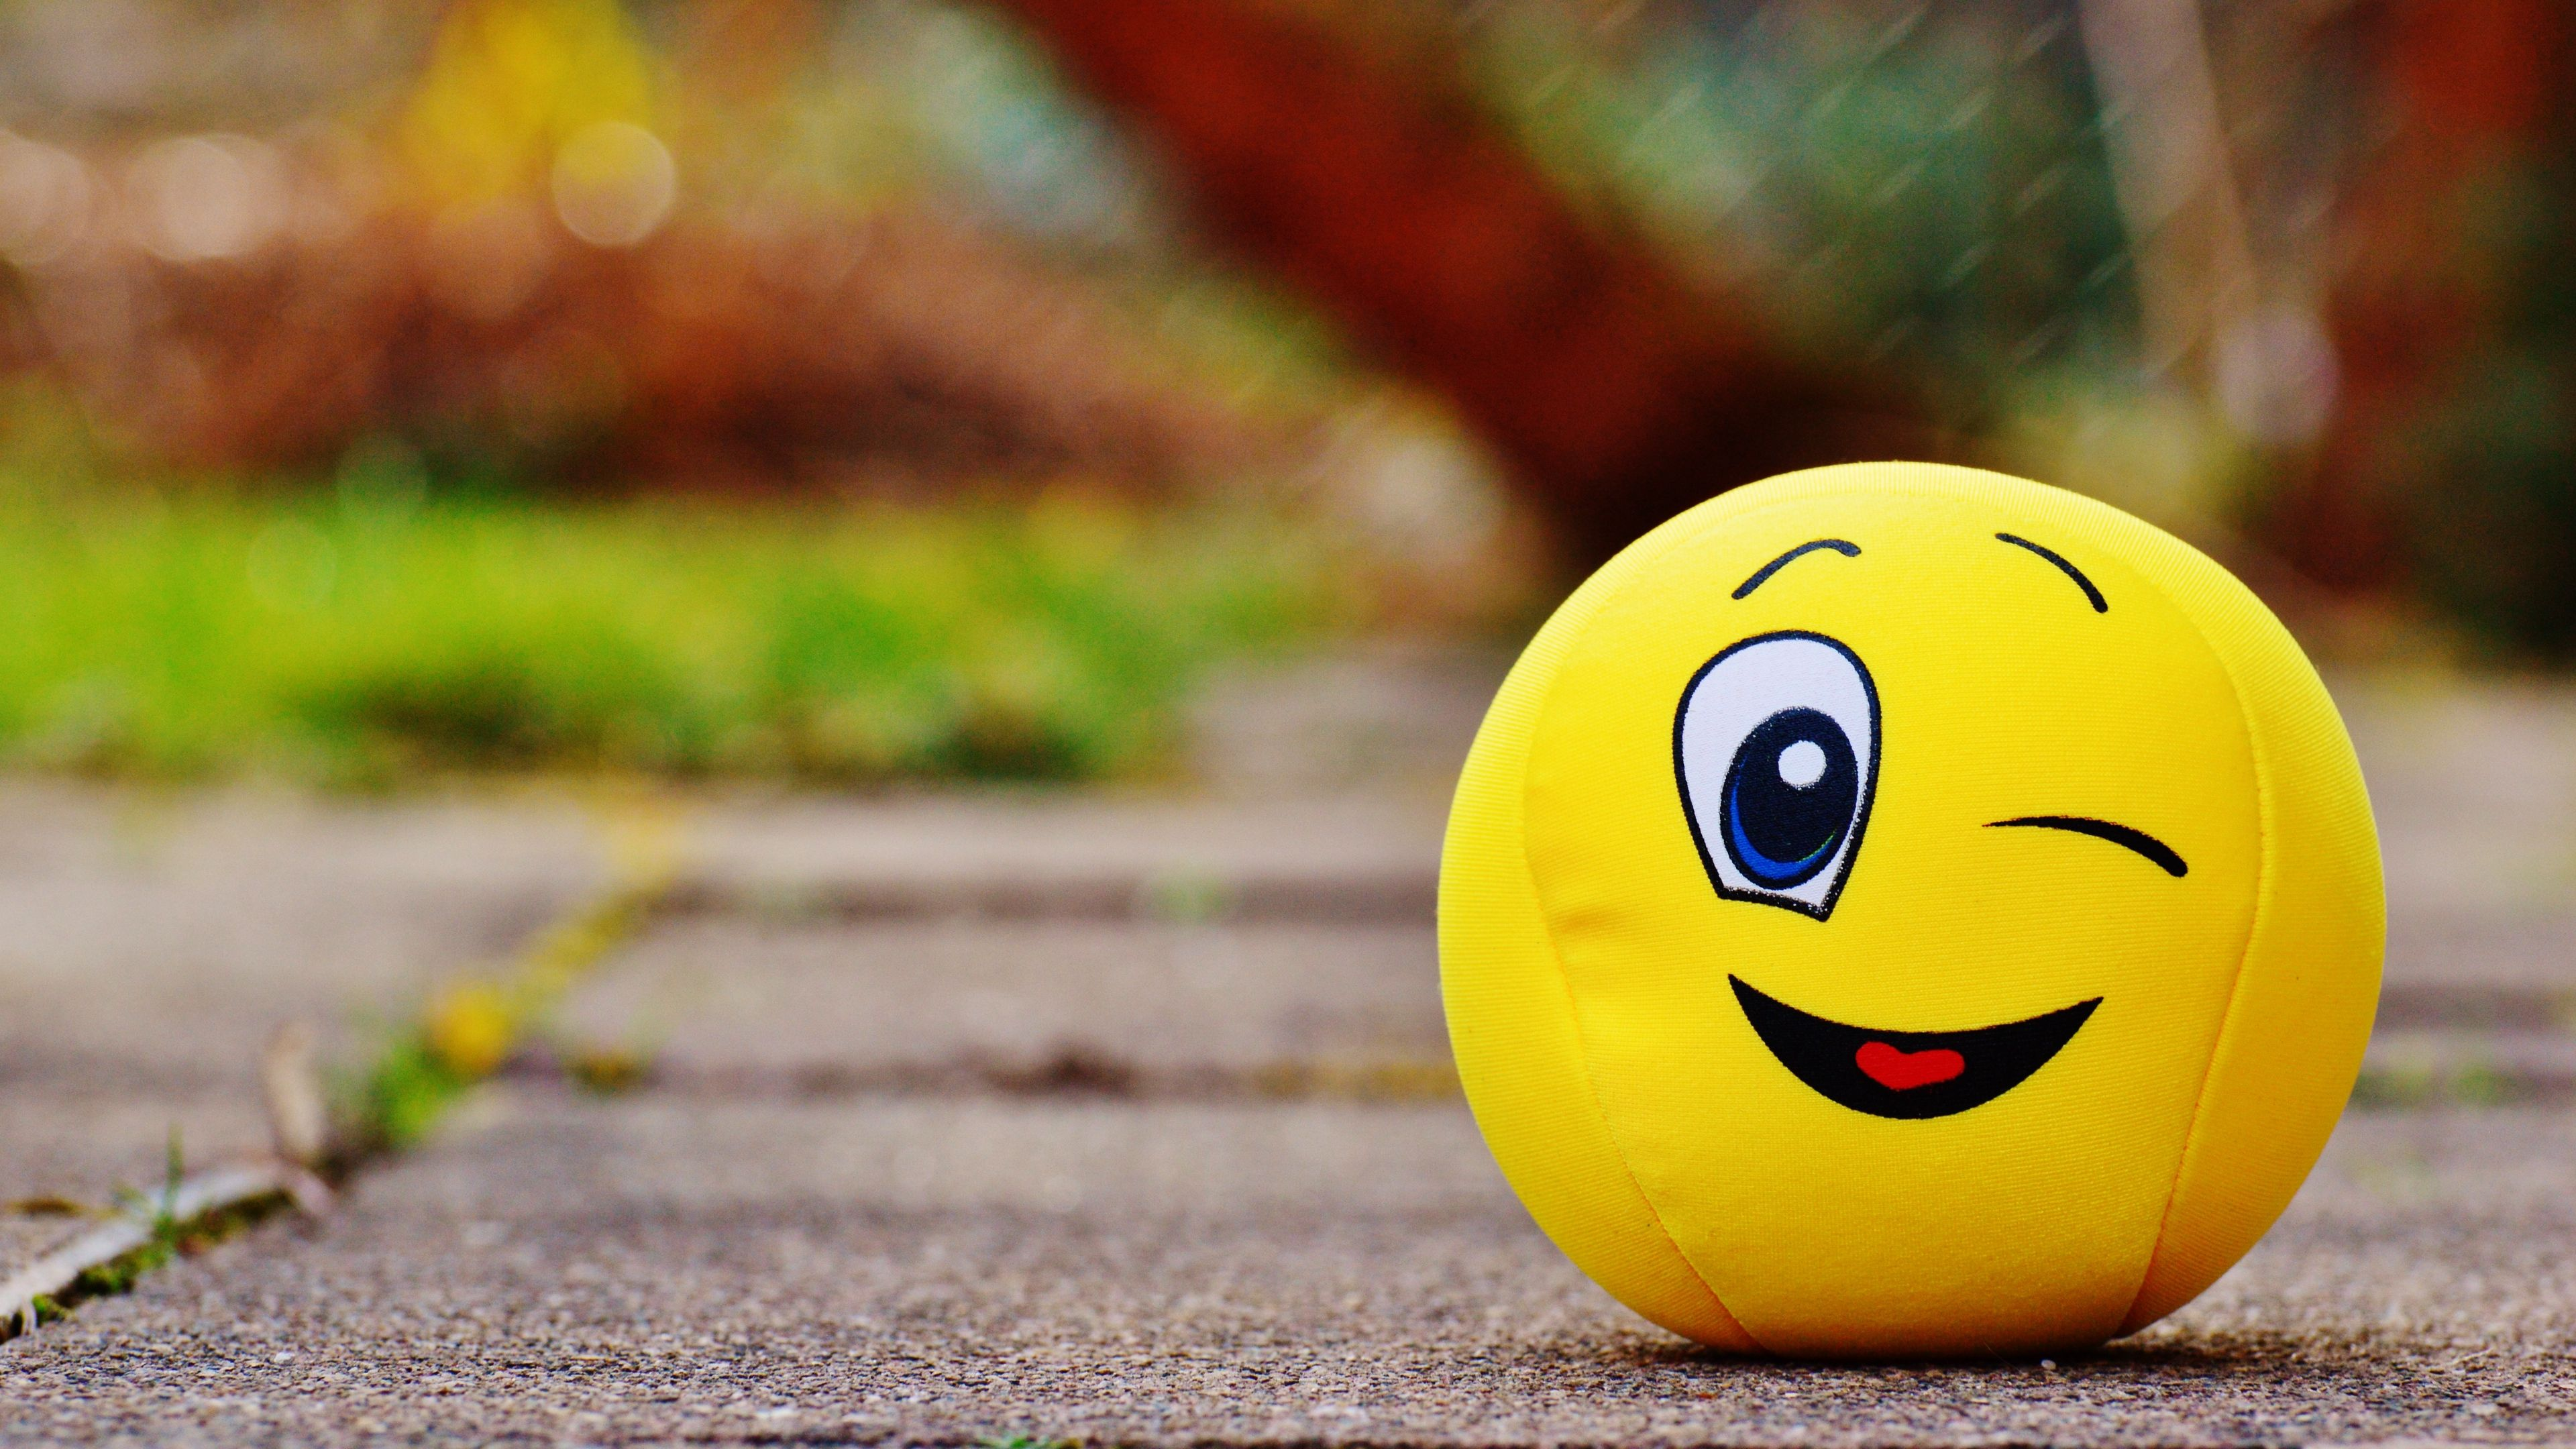 3840x2160 Download wallpaper 3840x2160 ball, smile, happy, toy 4k uhd ...